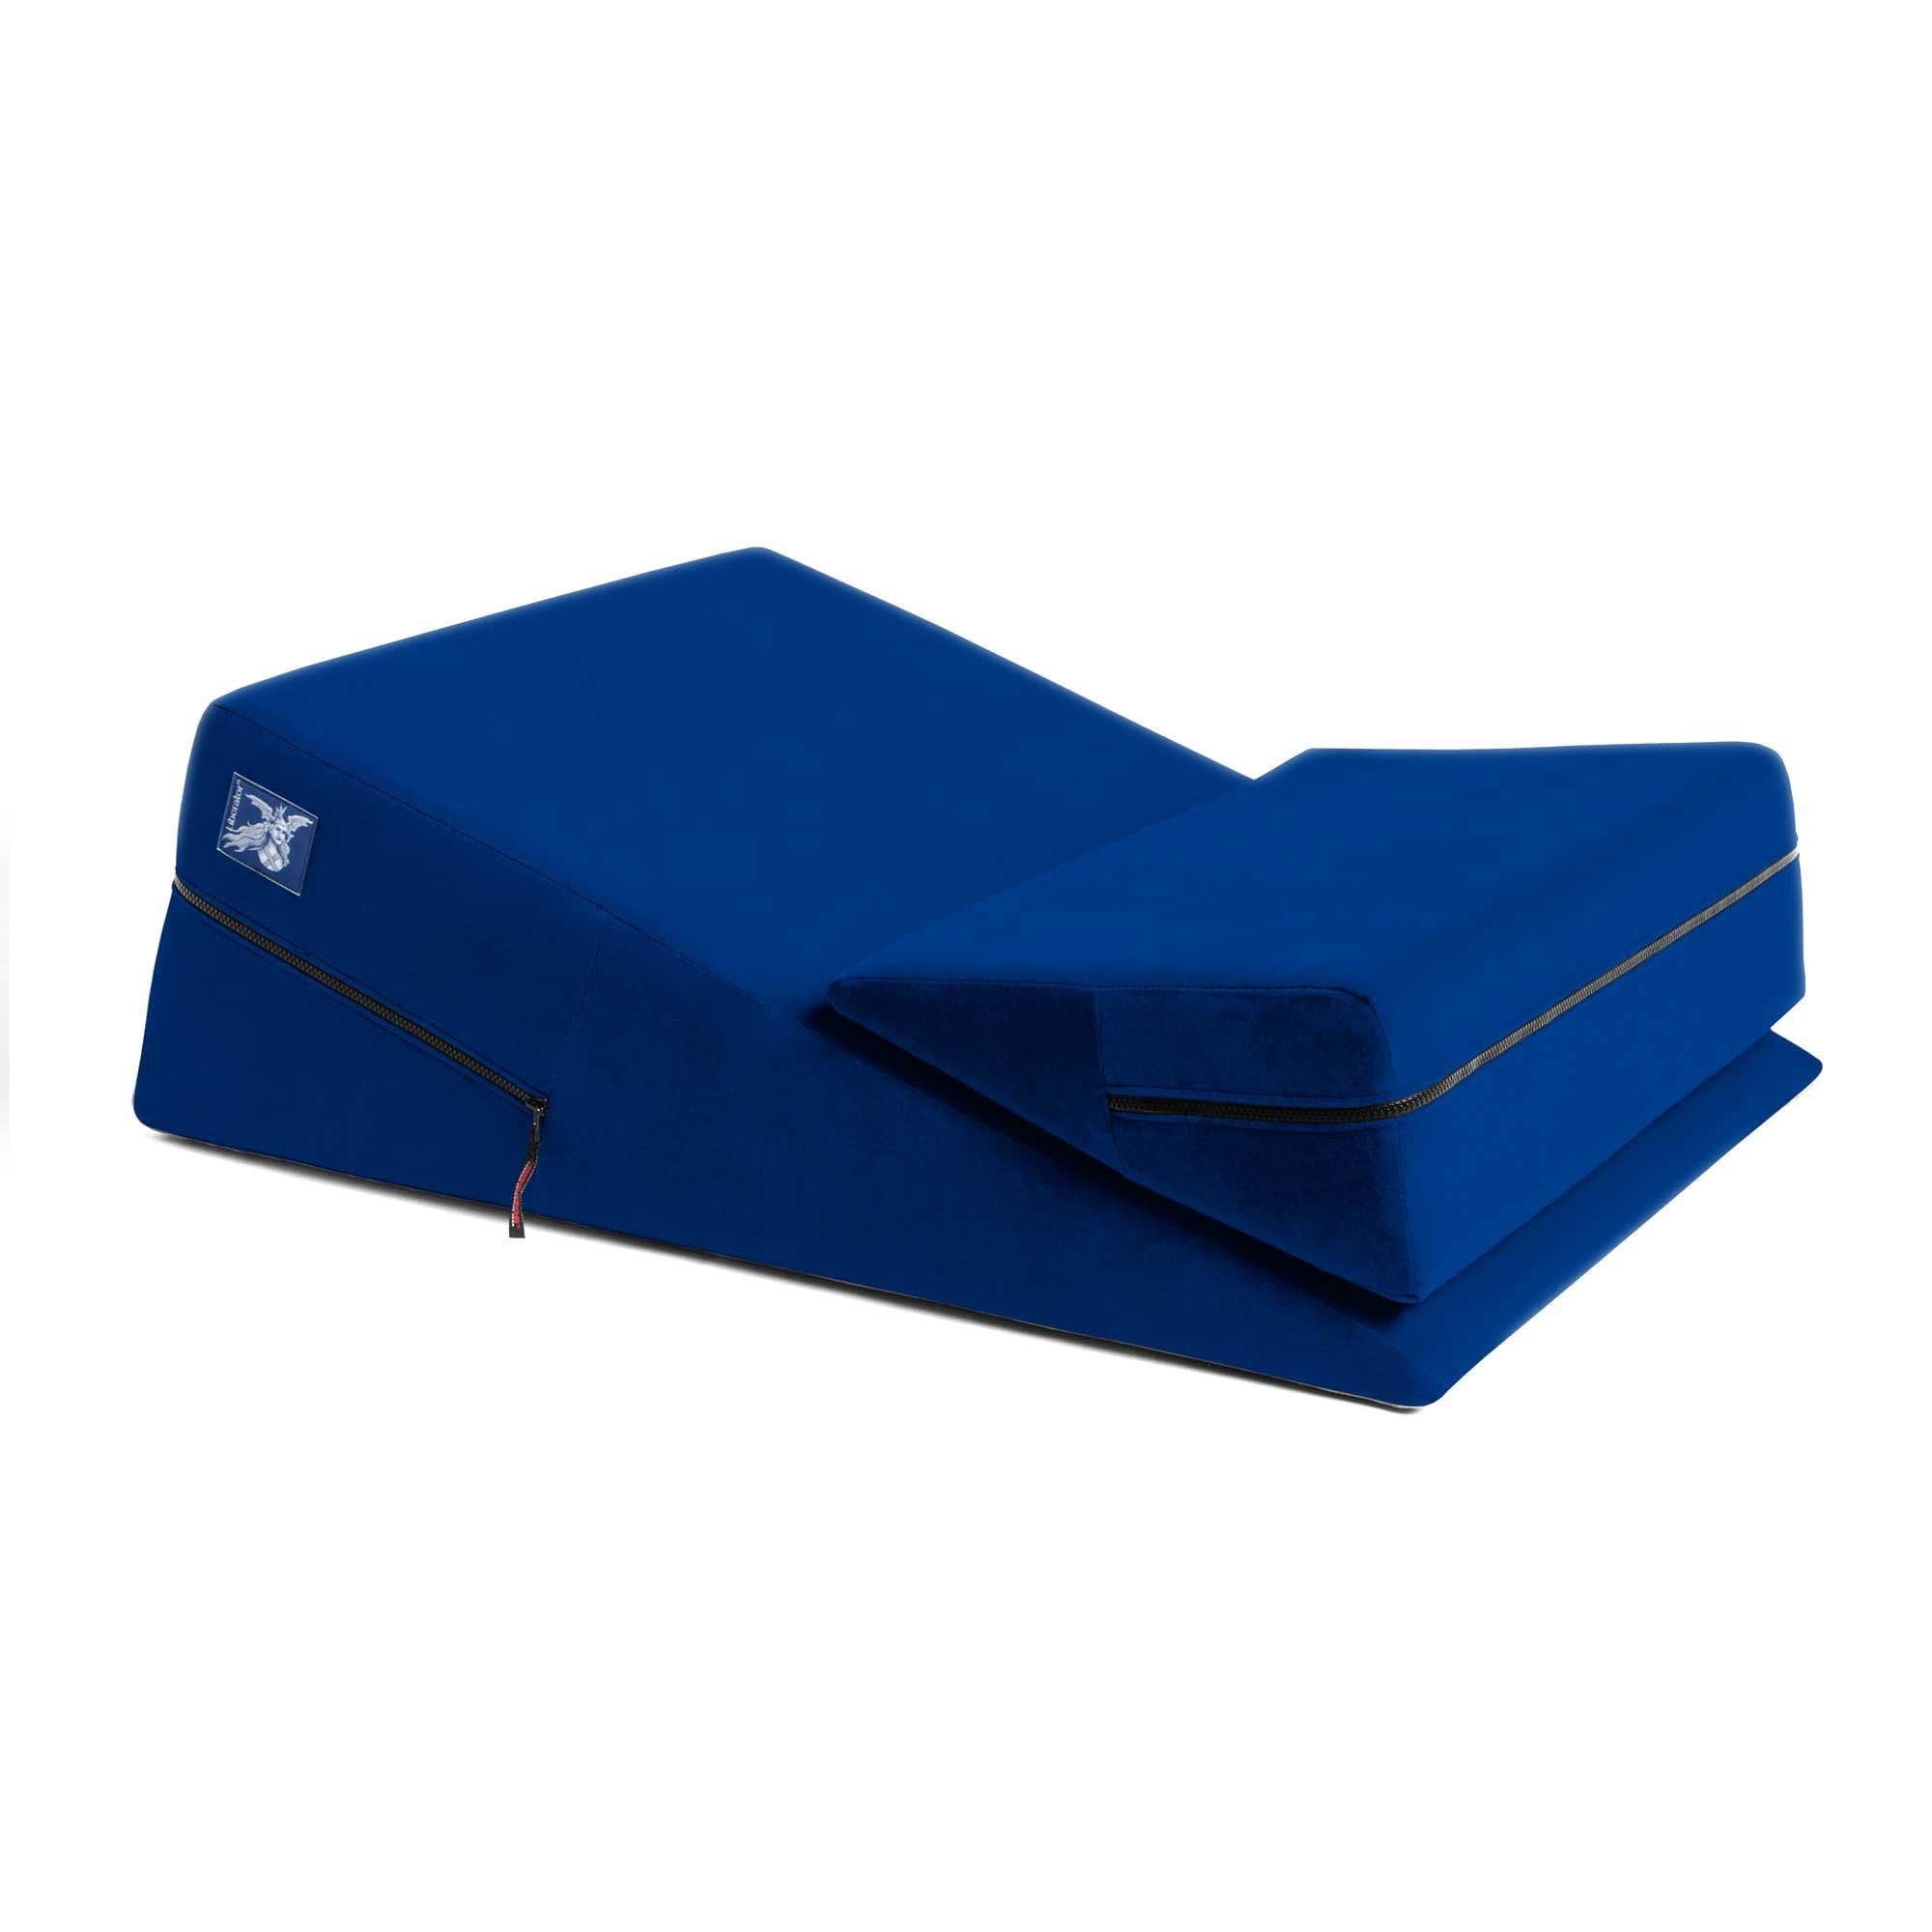 Wedge Ramp Combo Blue